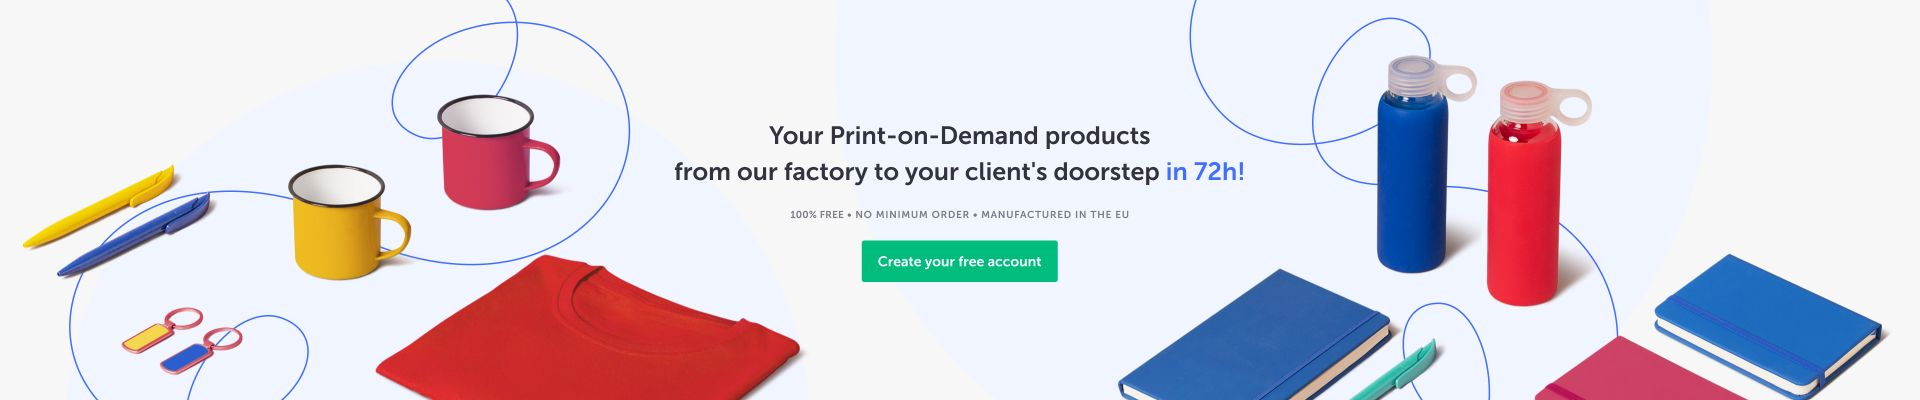 print-on-demand products in the uk | Camaloon